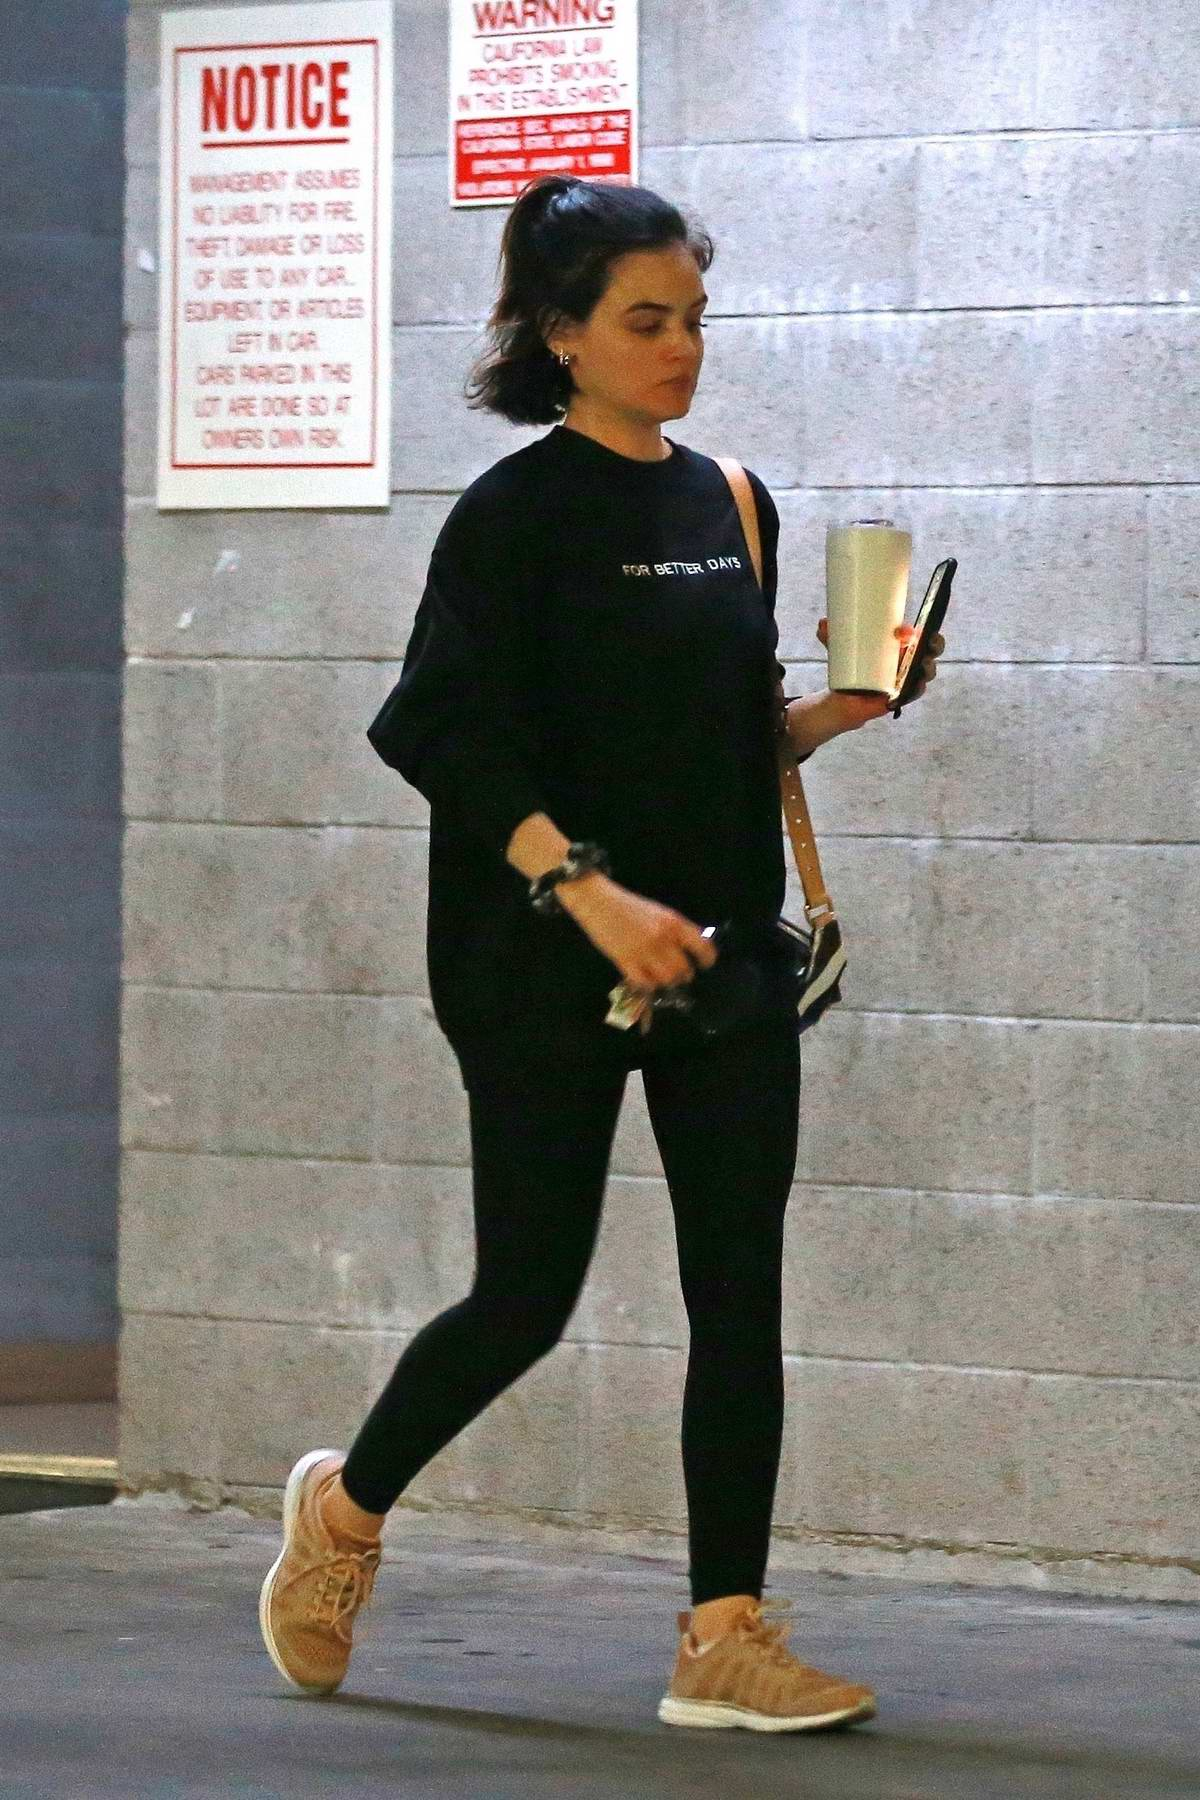 Lucy Hale seen leaving after a workout session at a private gym in Los Angeles